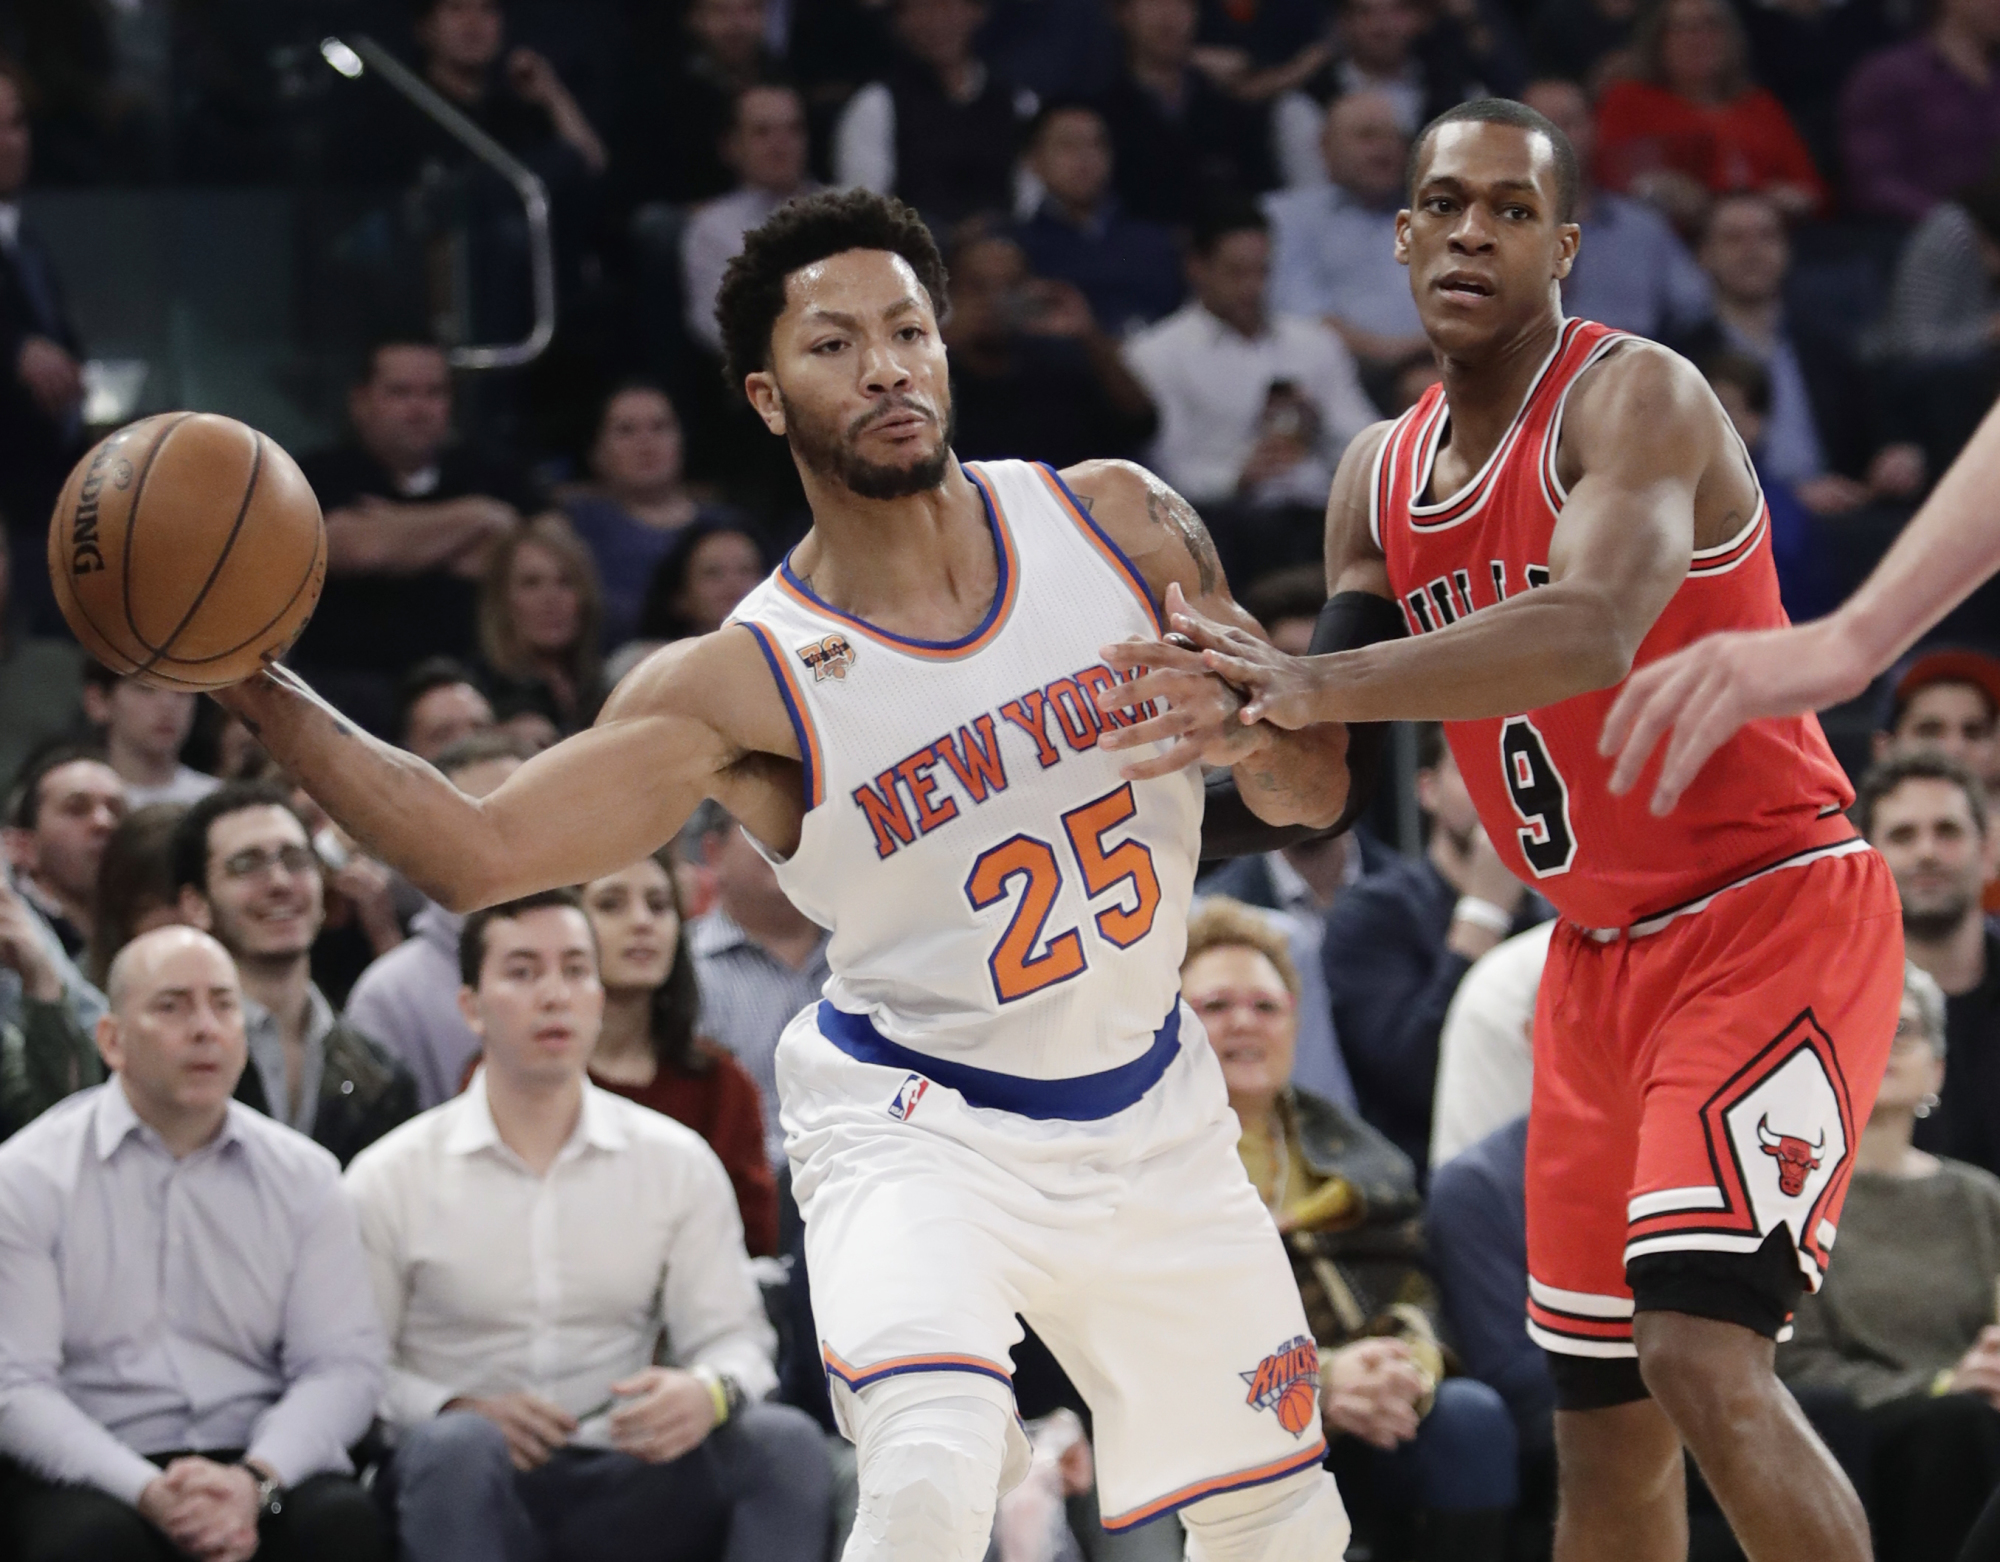 Knicks guard Derrick Rose, who was the 2011 NBA MVP, has been a consistent target of media and fan criticism throughout his career. | AP